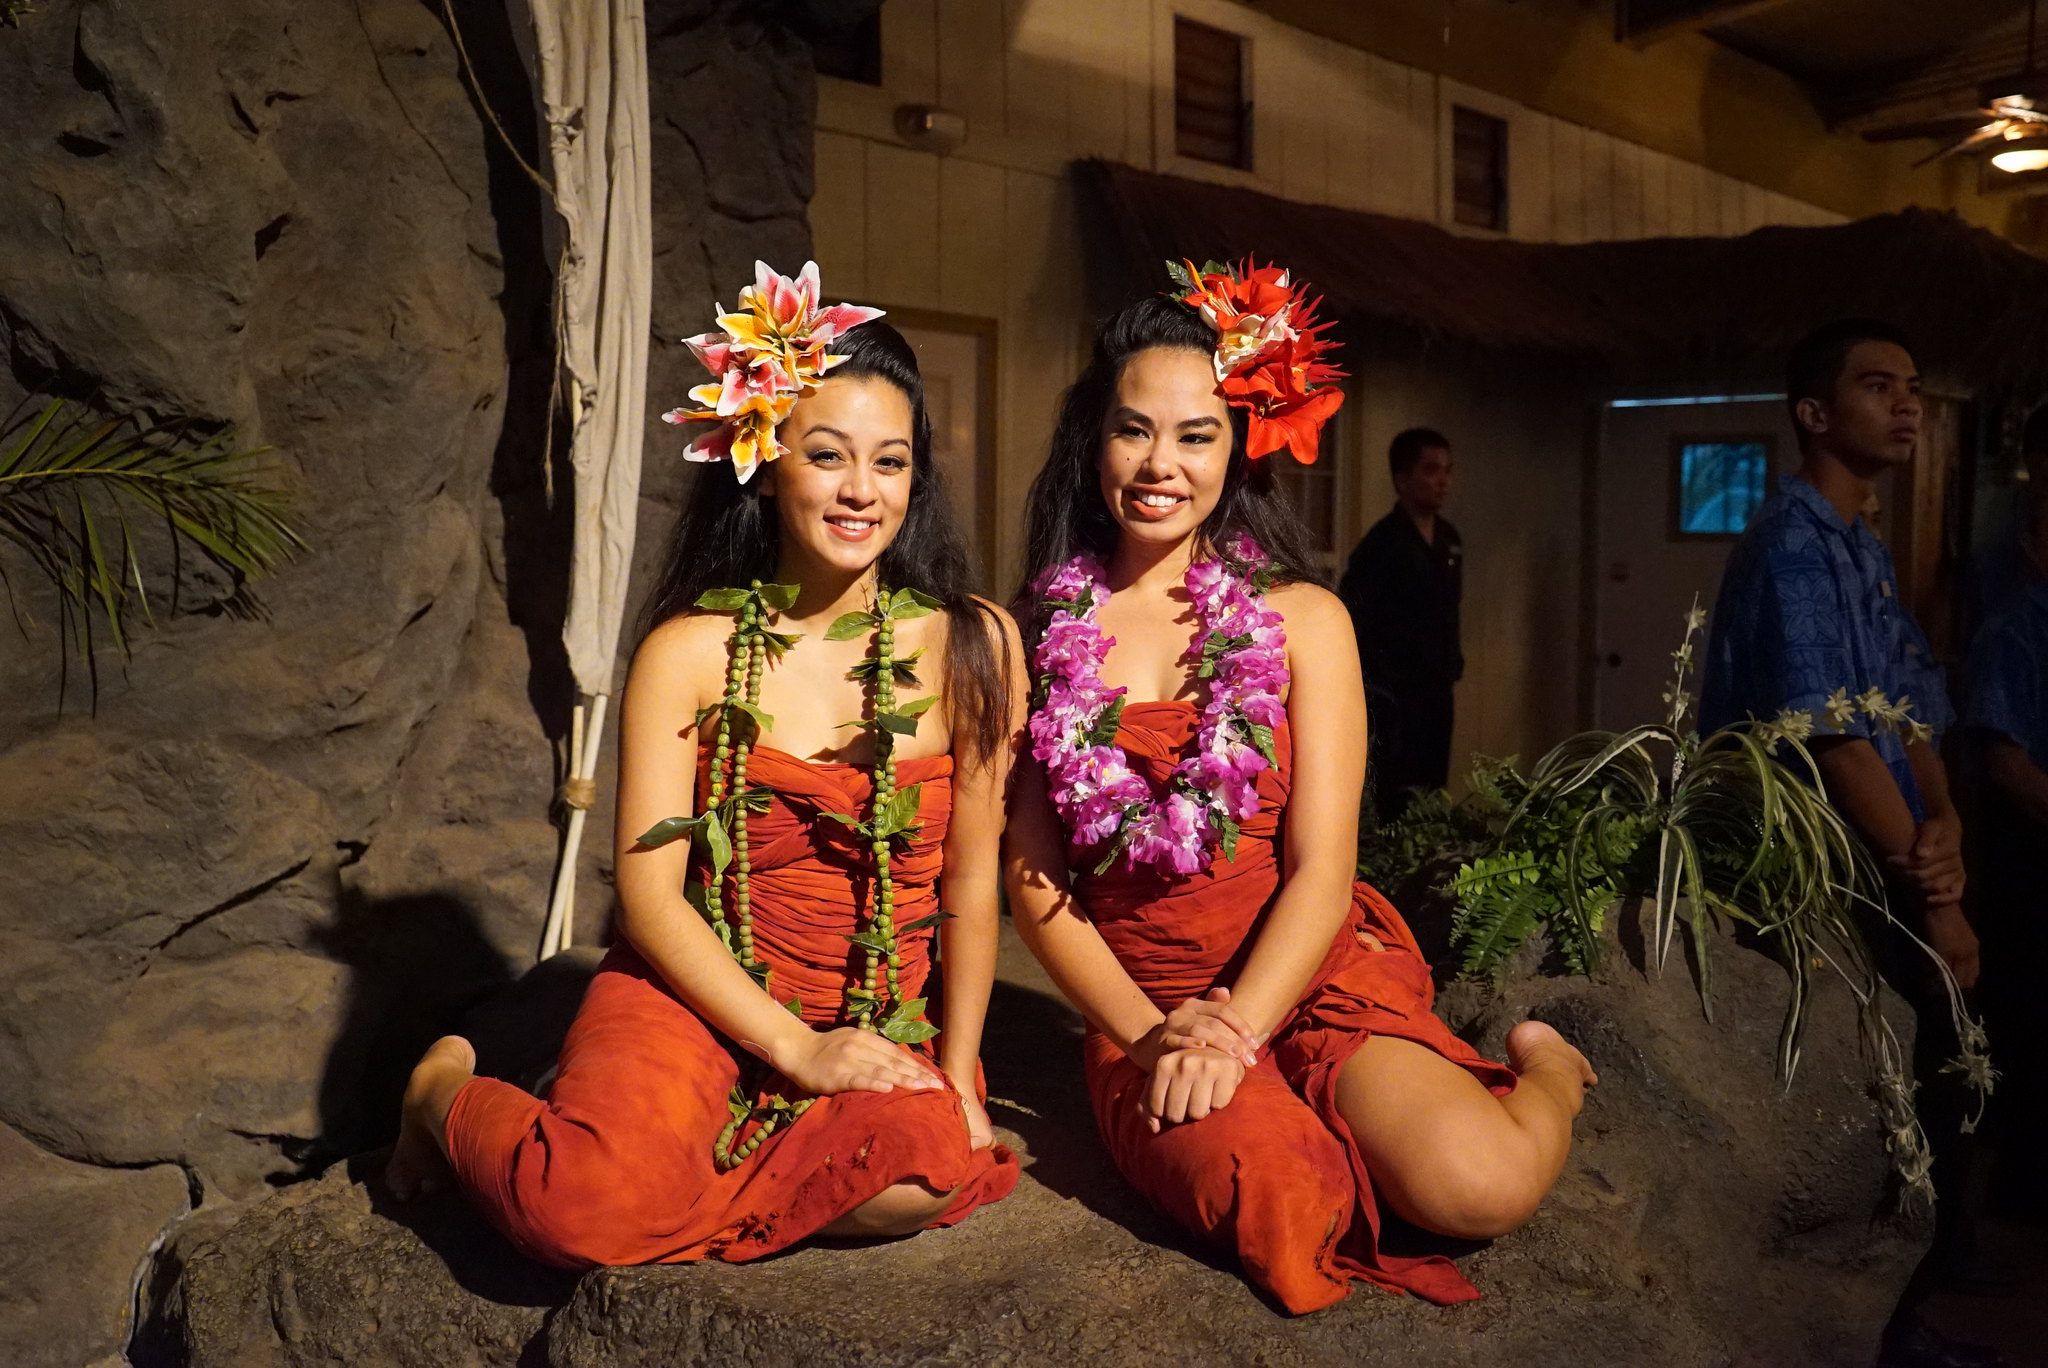 Experience the Luau Kalamaku and Buffet Dinner